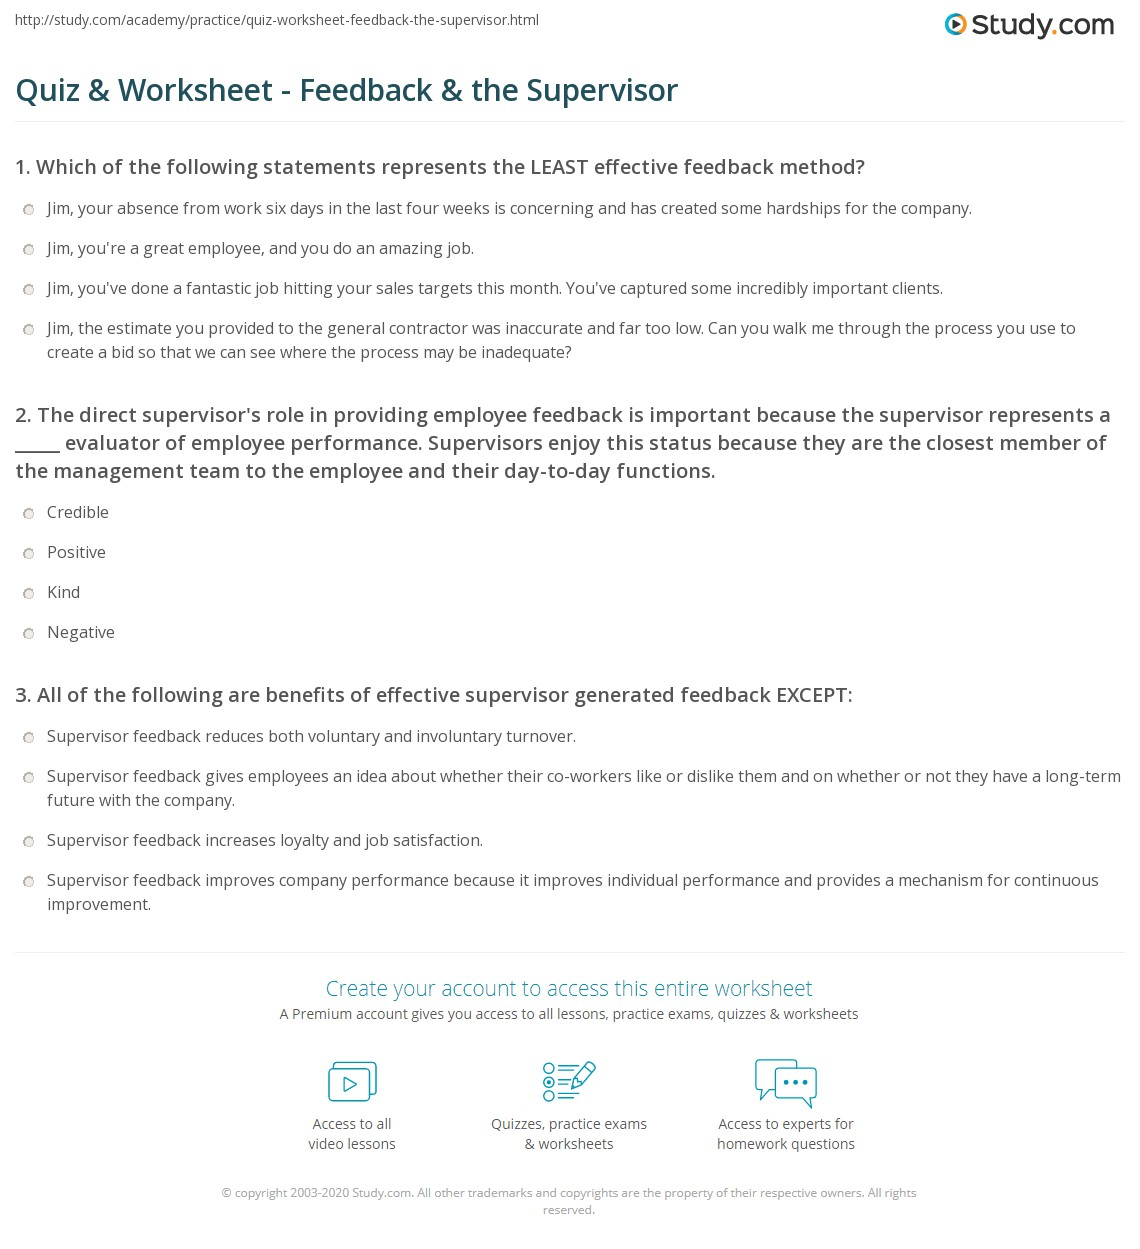 Worksheets Performance Feedback Worksheet quiz worksheet feedback the supervisor study com direct supervisors role in providing employee is important because represents a evaluator of perfo